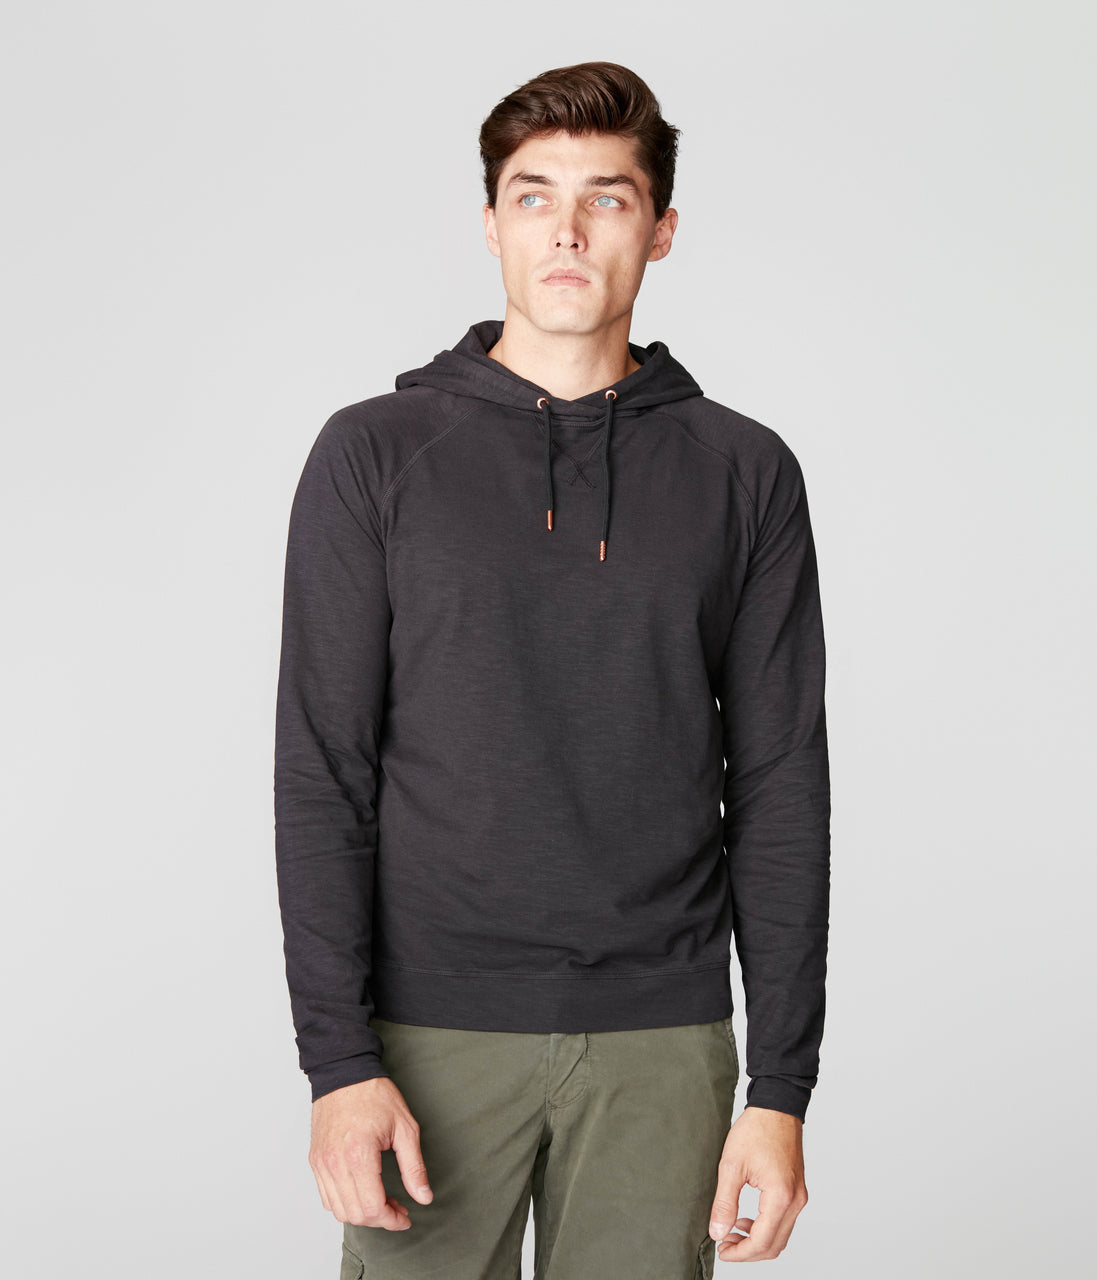 Legend Hoodie in Soft Slub Jersey - Black - Good Man Brand - Legend Hoodie in Soft Slub Jersey - Black